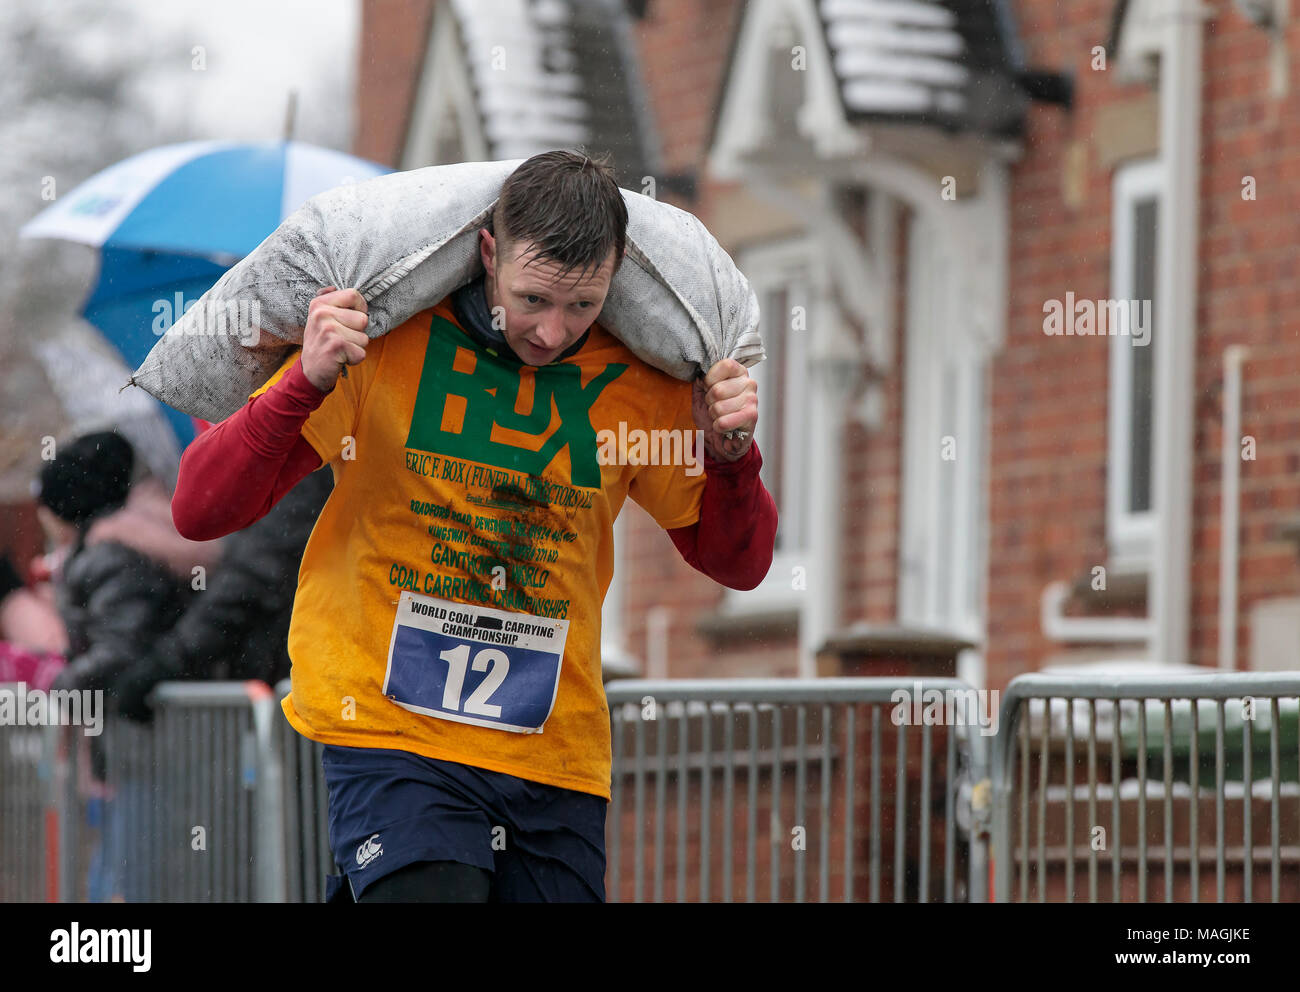 Gawthorpe, West Yorkshire, UK. 2nd April 2018. Winner of the first of two men's races nears the finish line. The World Coal Carrying Championships take place every year on Easter Monday, when competitors, carrying sacks of coal, race over a 1012 m uphill course through the former mining village near Wakefield. Male competitors carry 50kg sacks and females 20kg. Women's winner was Danielle Sidebottom, Men's winner was Andrew Corrigan. © Ian Wray/Alamy live news - Stock Image